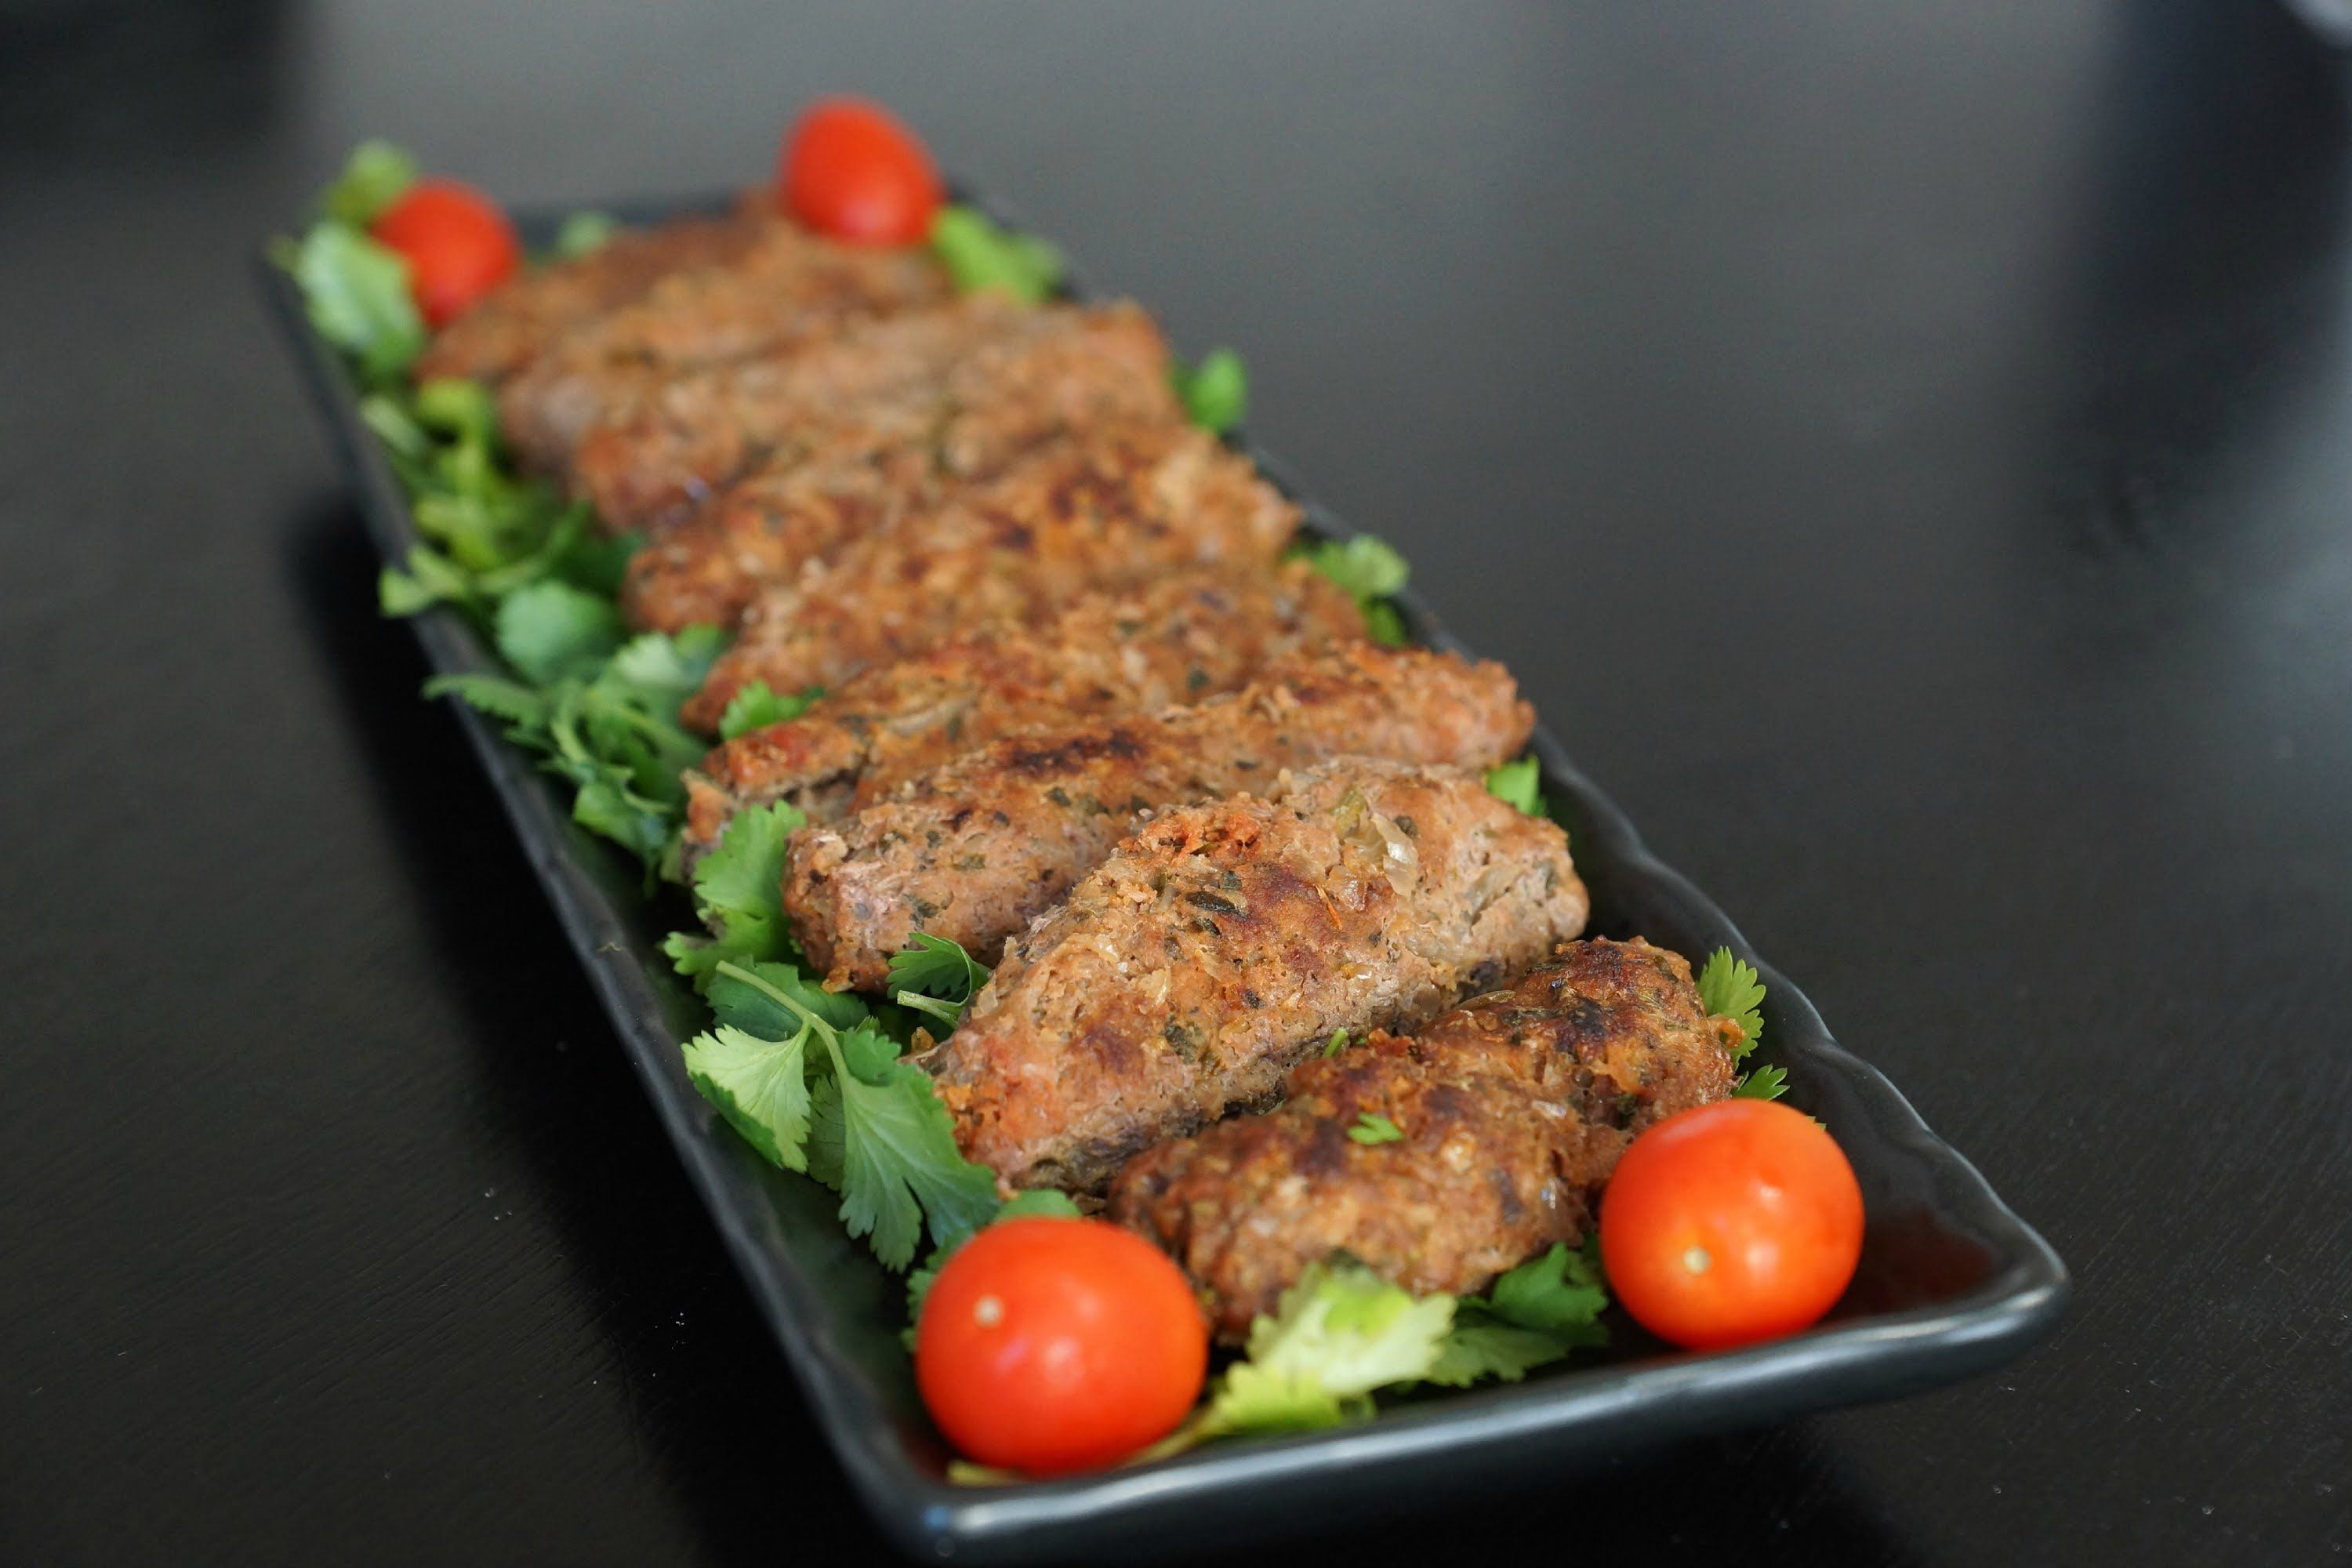 Egyptian kofta mince pinterest egyptian kofta egyptian recipesegyptian foodarabic recipessmoker recipesarabic foodinternational foodyoutubewatchesparenting forumfinder Image collections